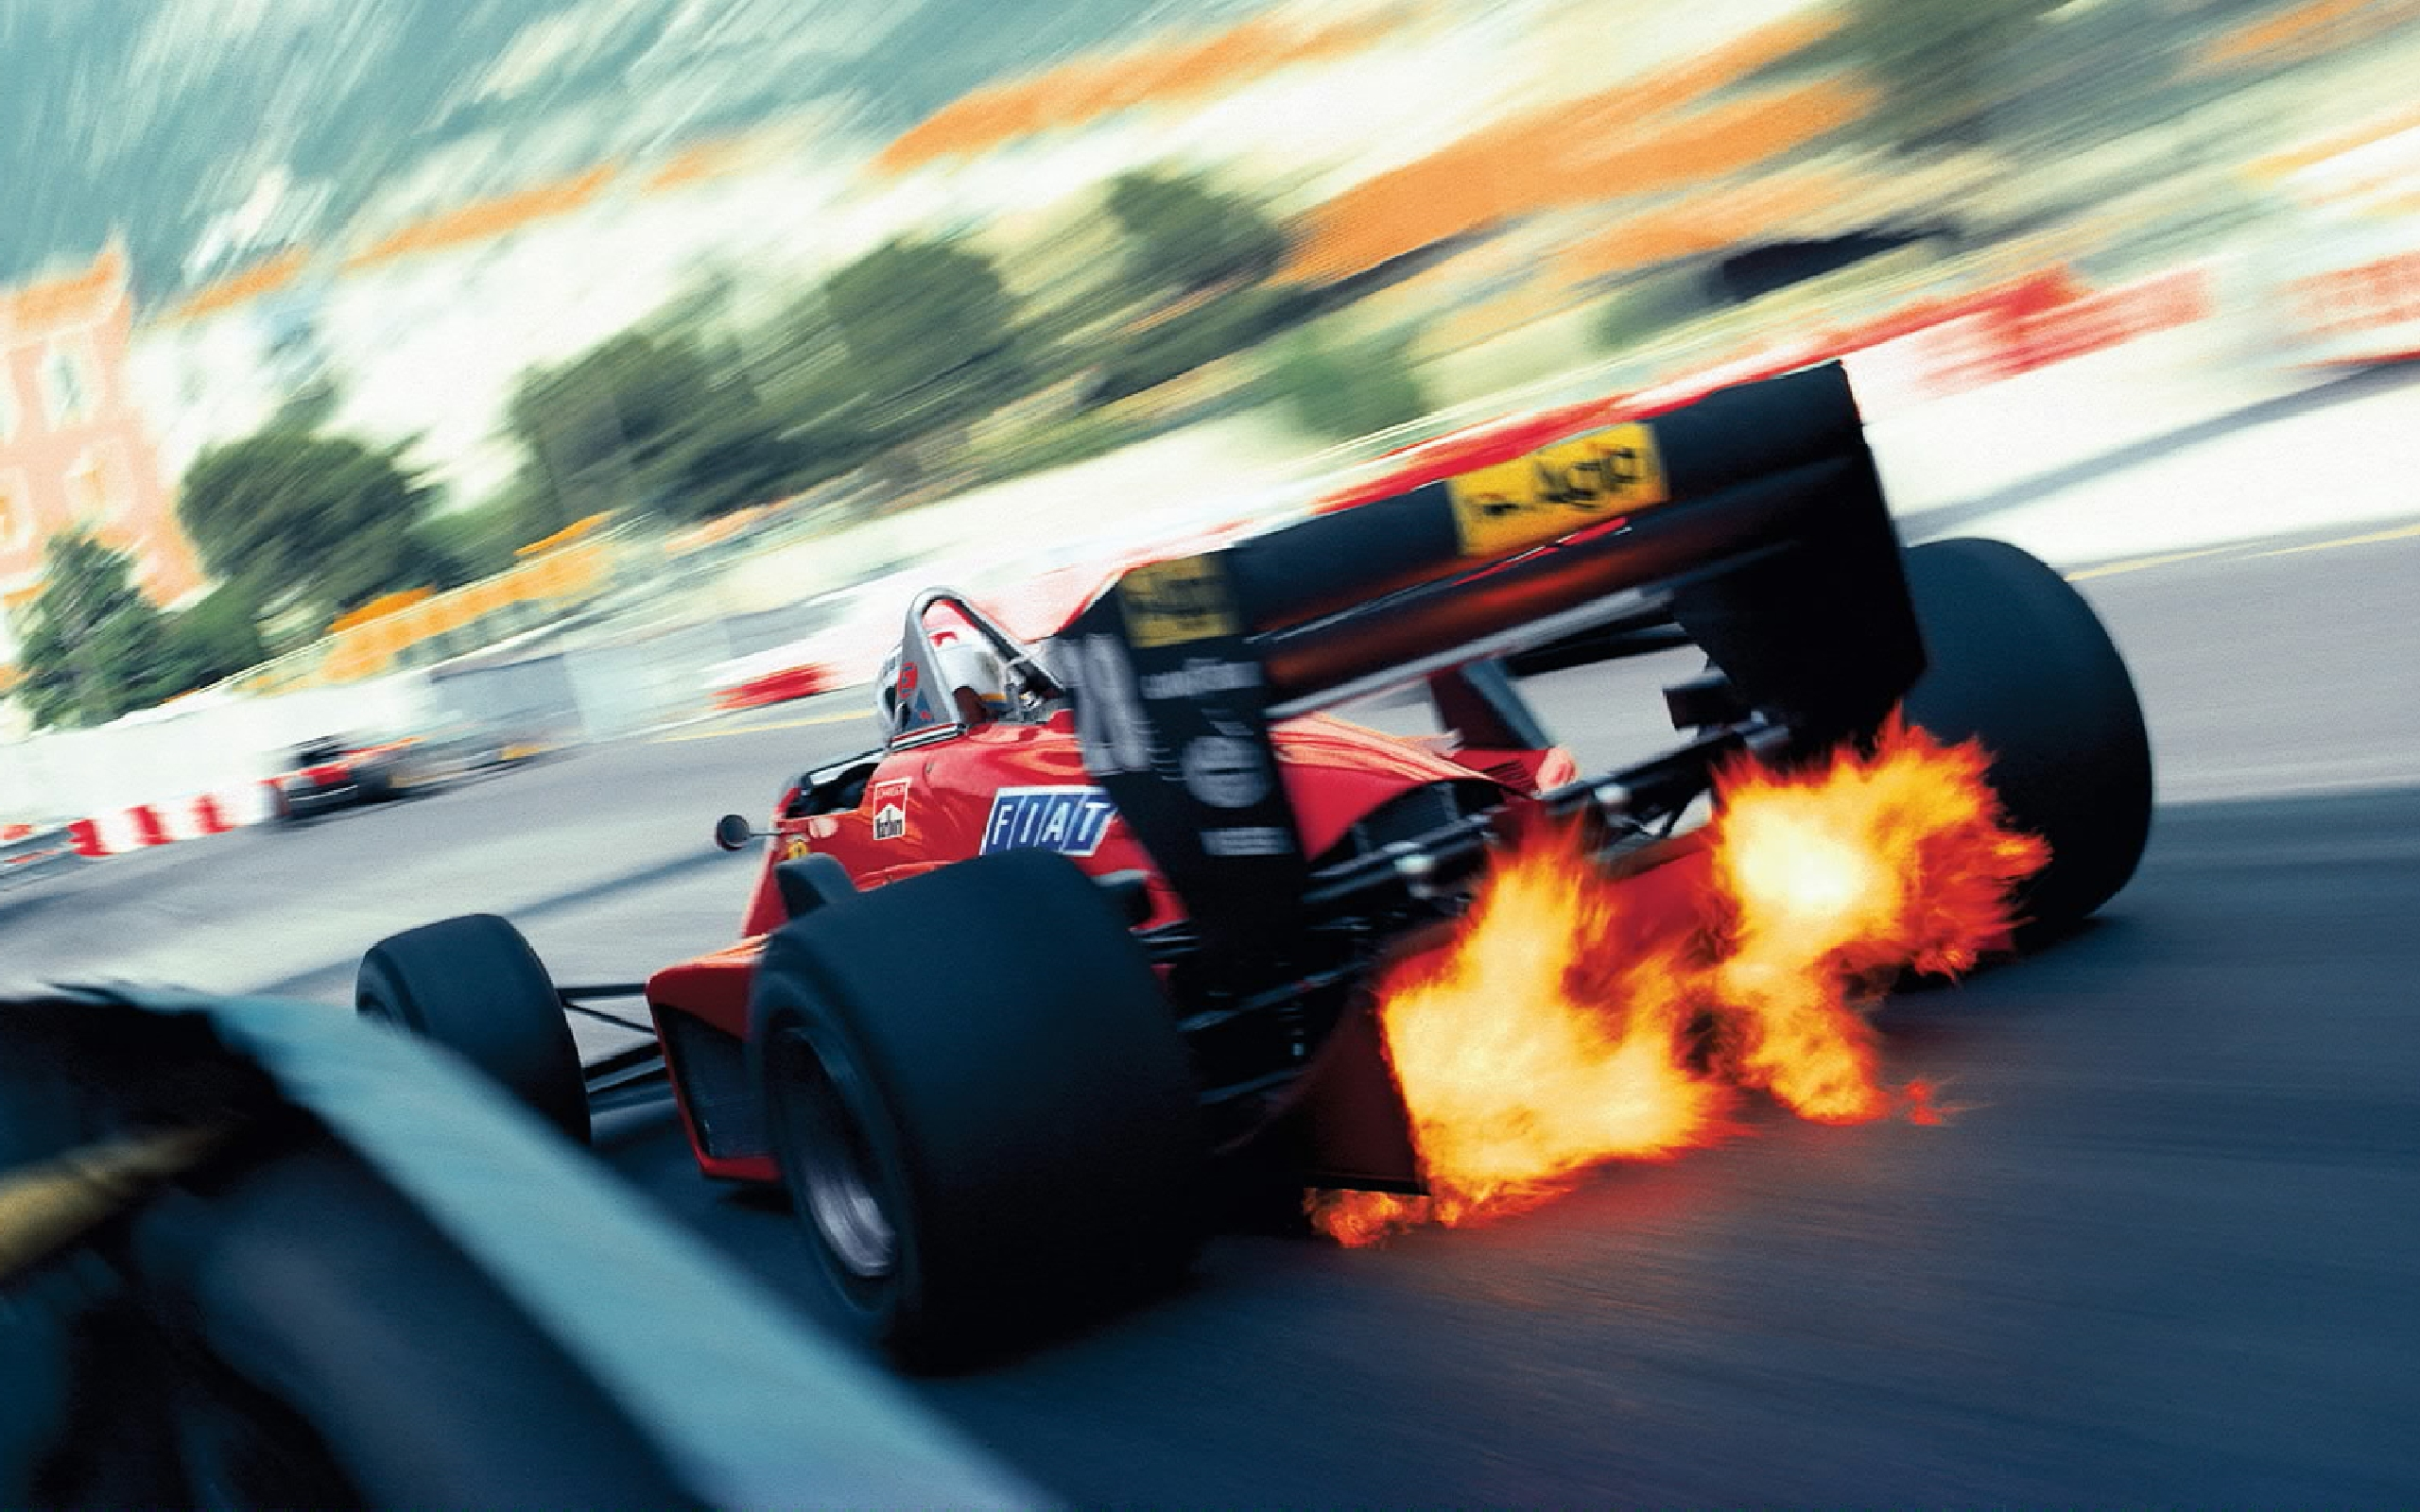 f1 full hd wallpaper and background image | 2560x1600 | id:327575